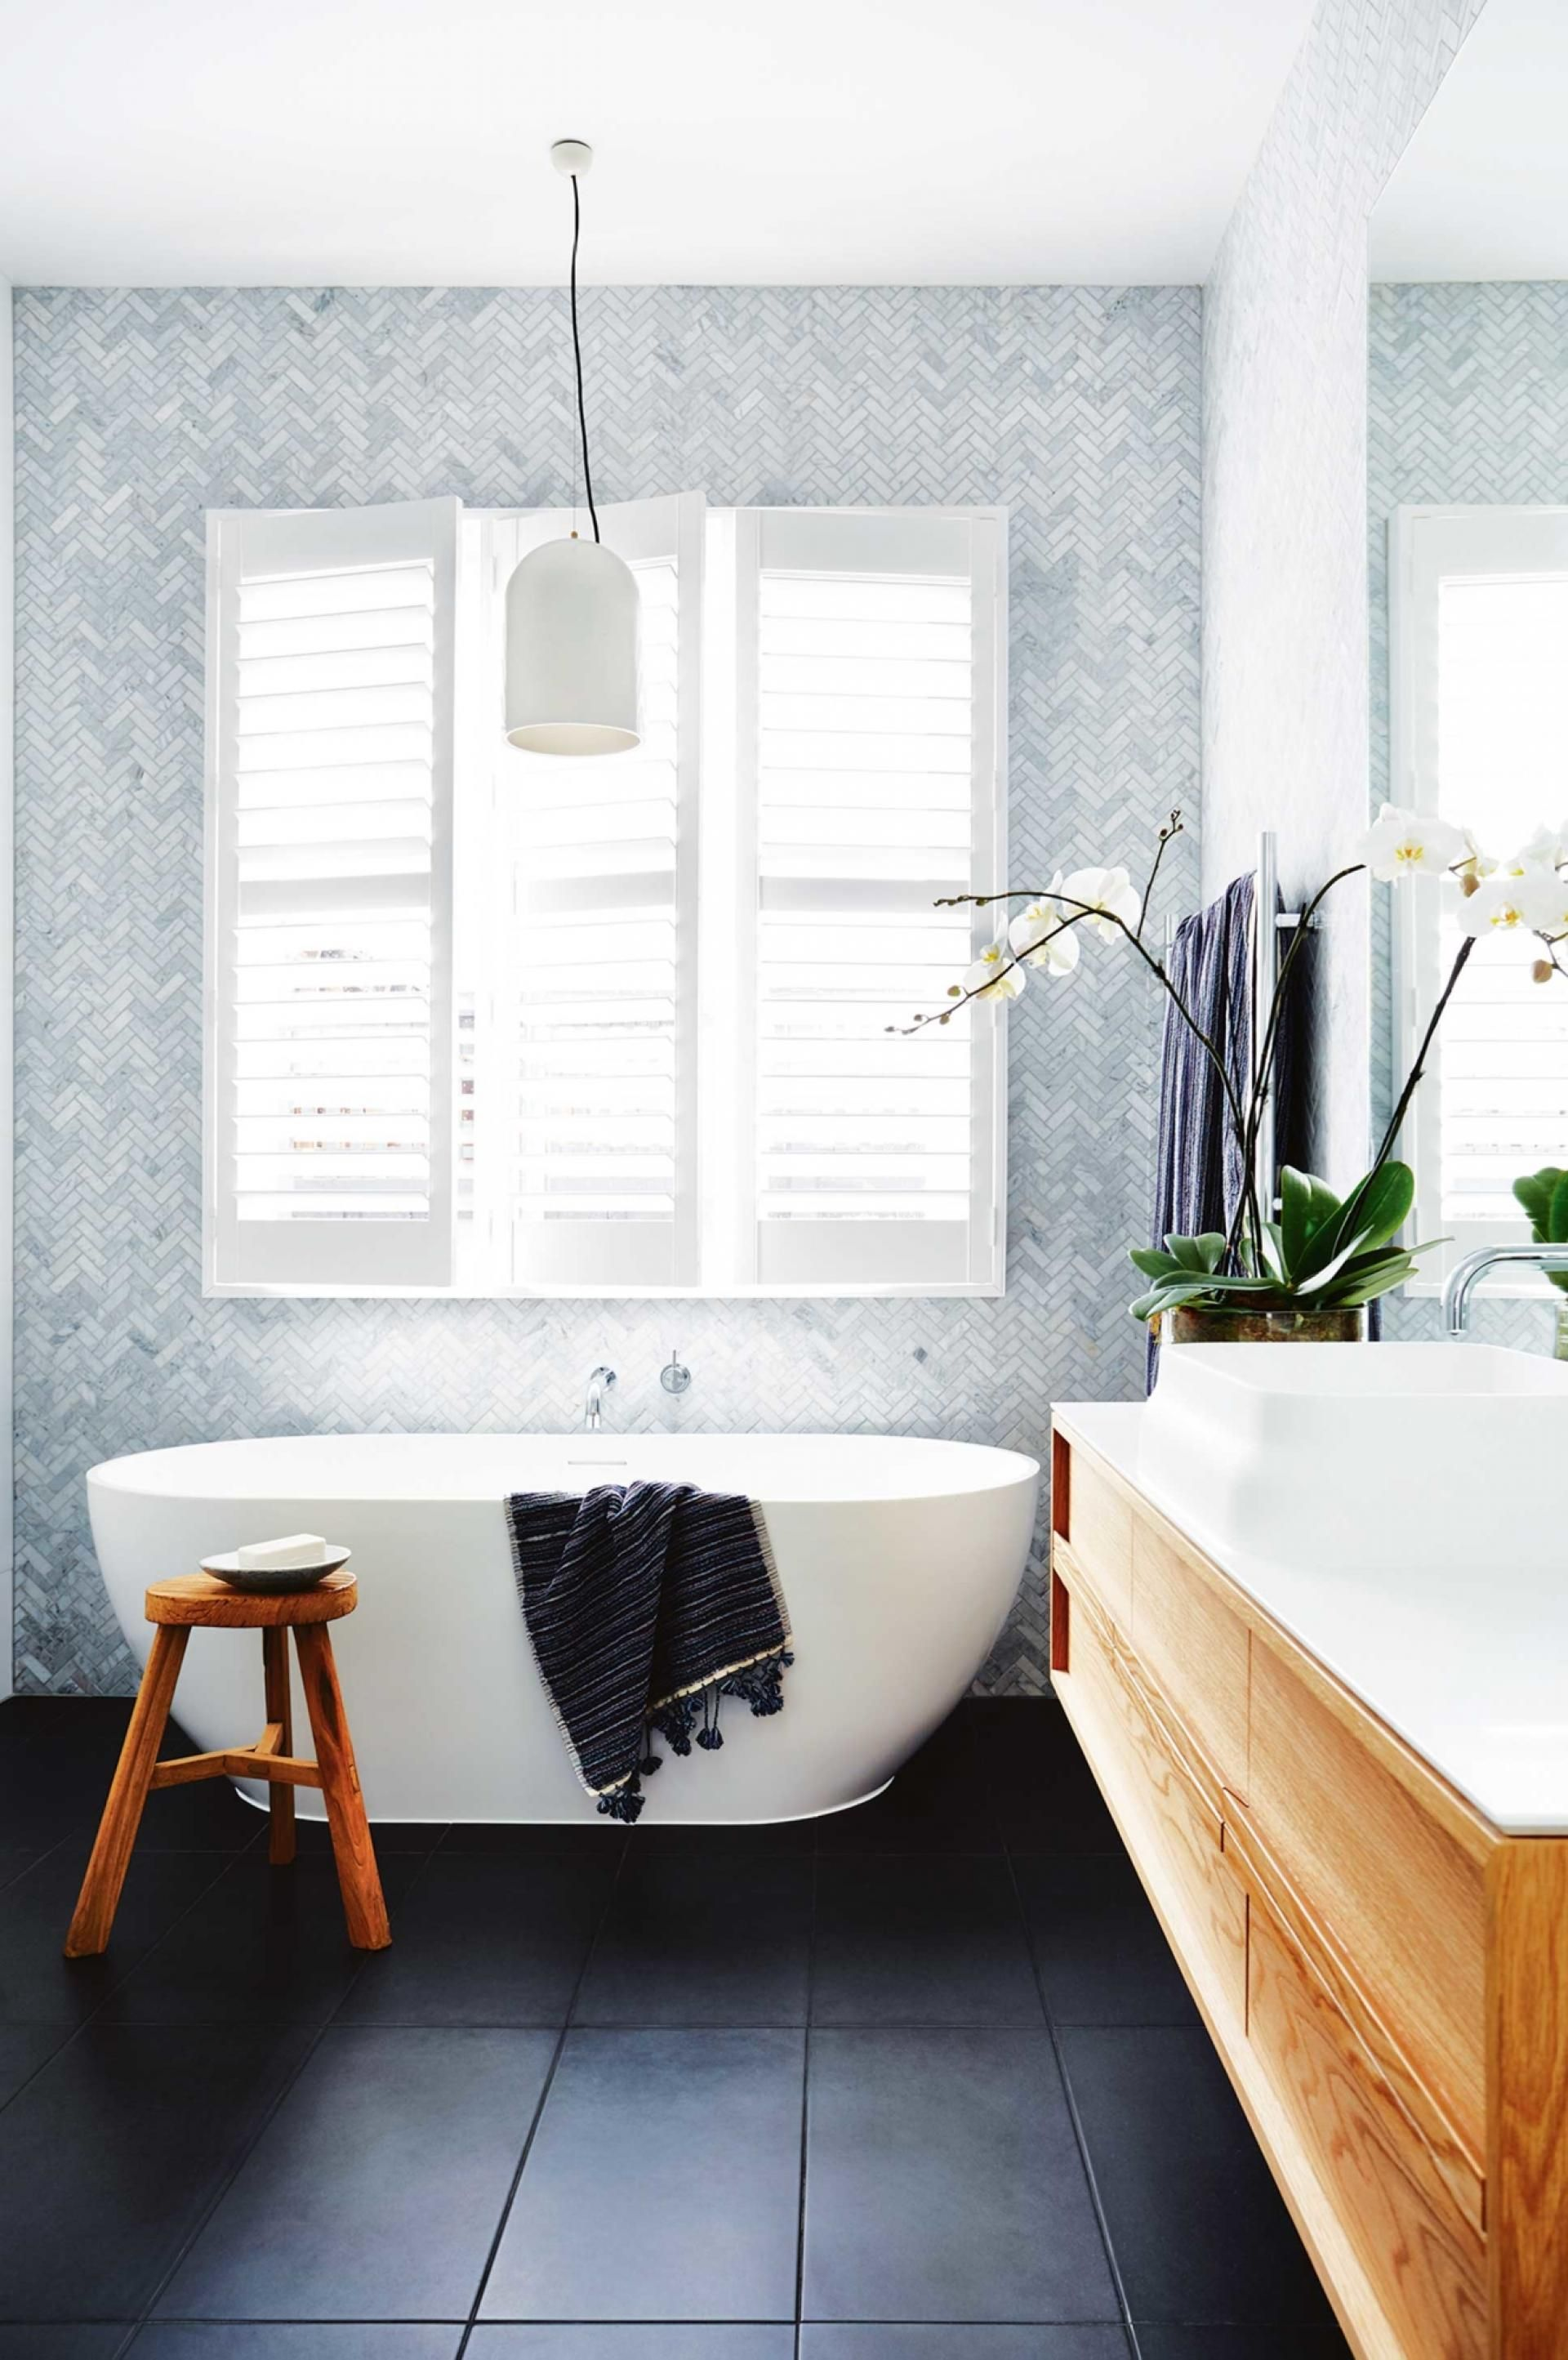 Love everything about this | Bathroom ideas | Pinterest ...